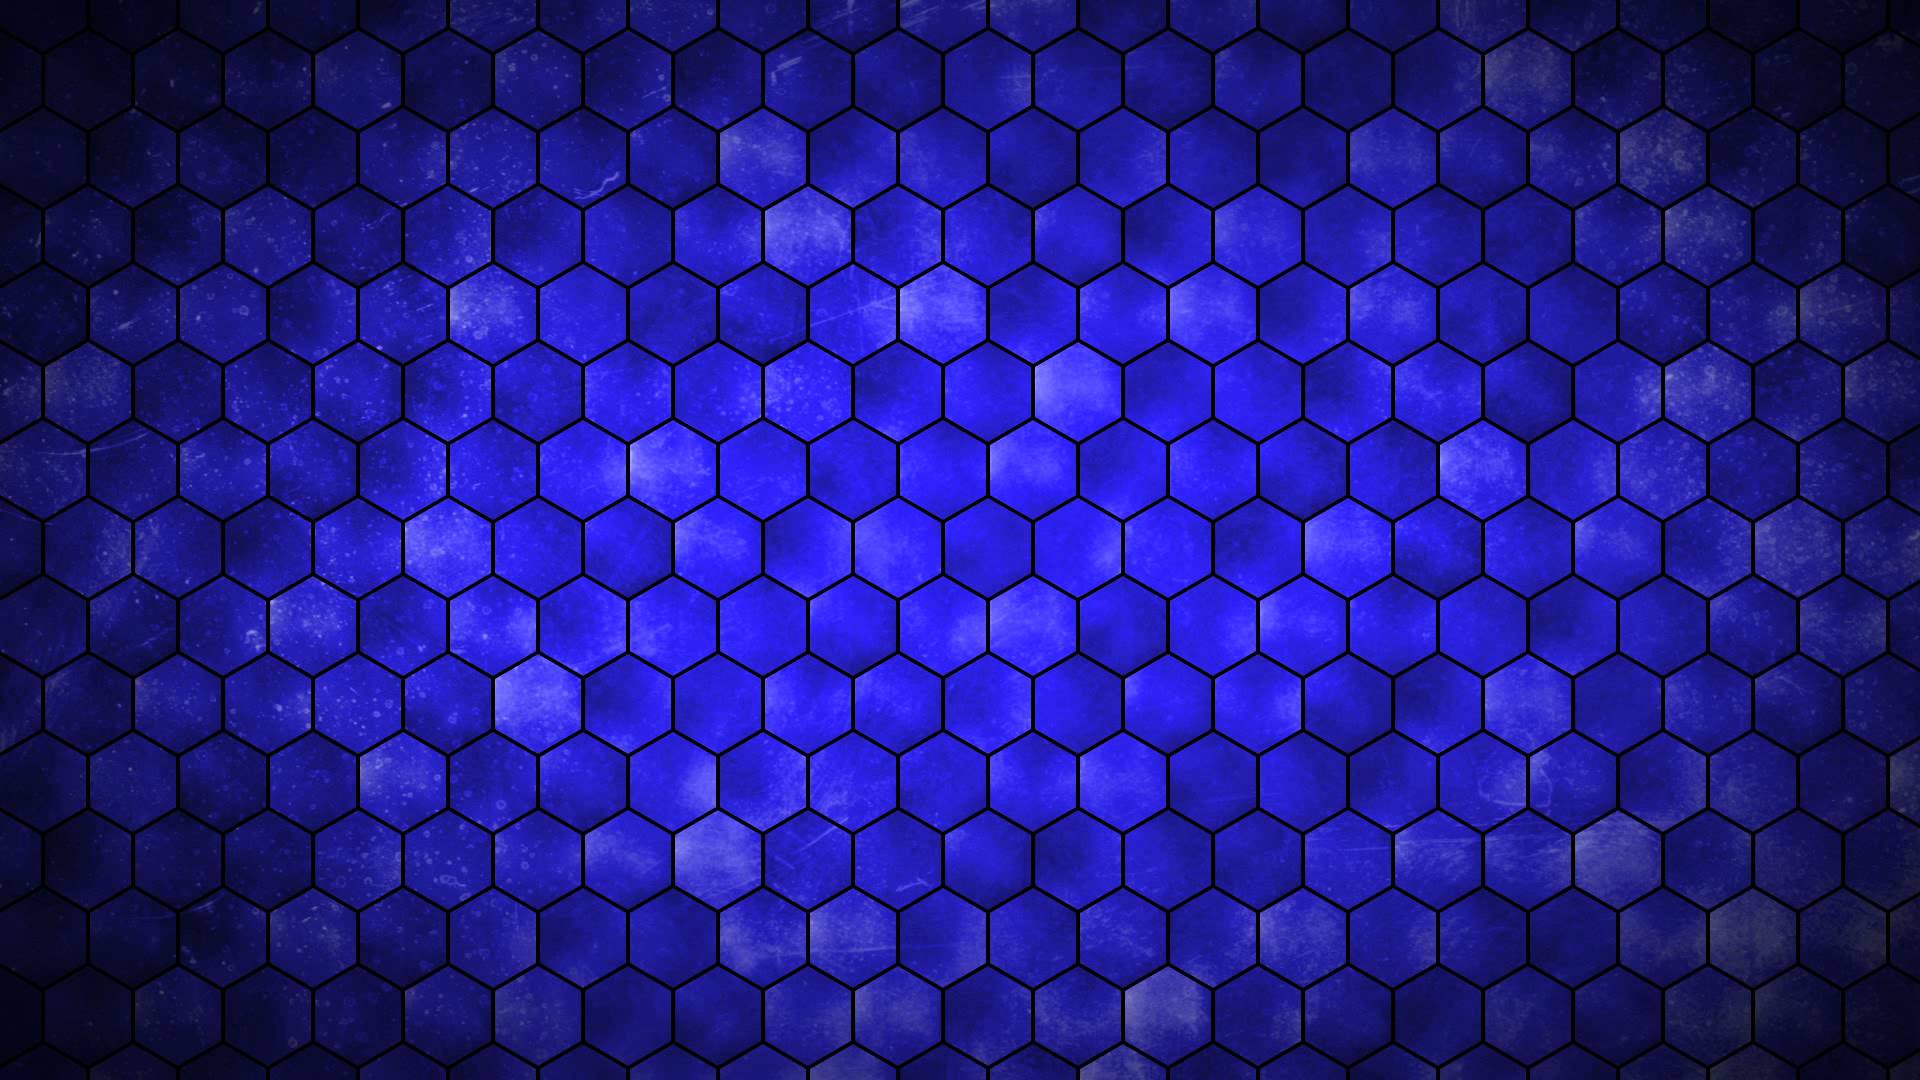 Hexagon Background - PowerPoint Backgrounds for Free